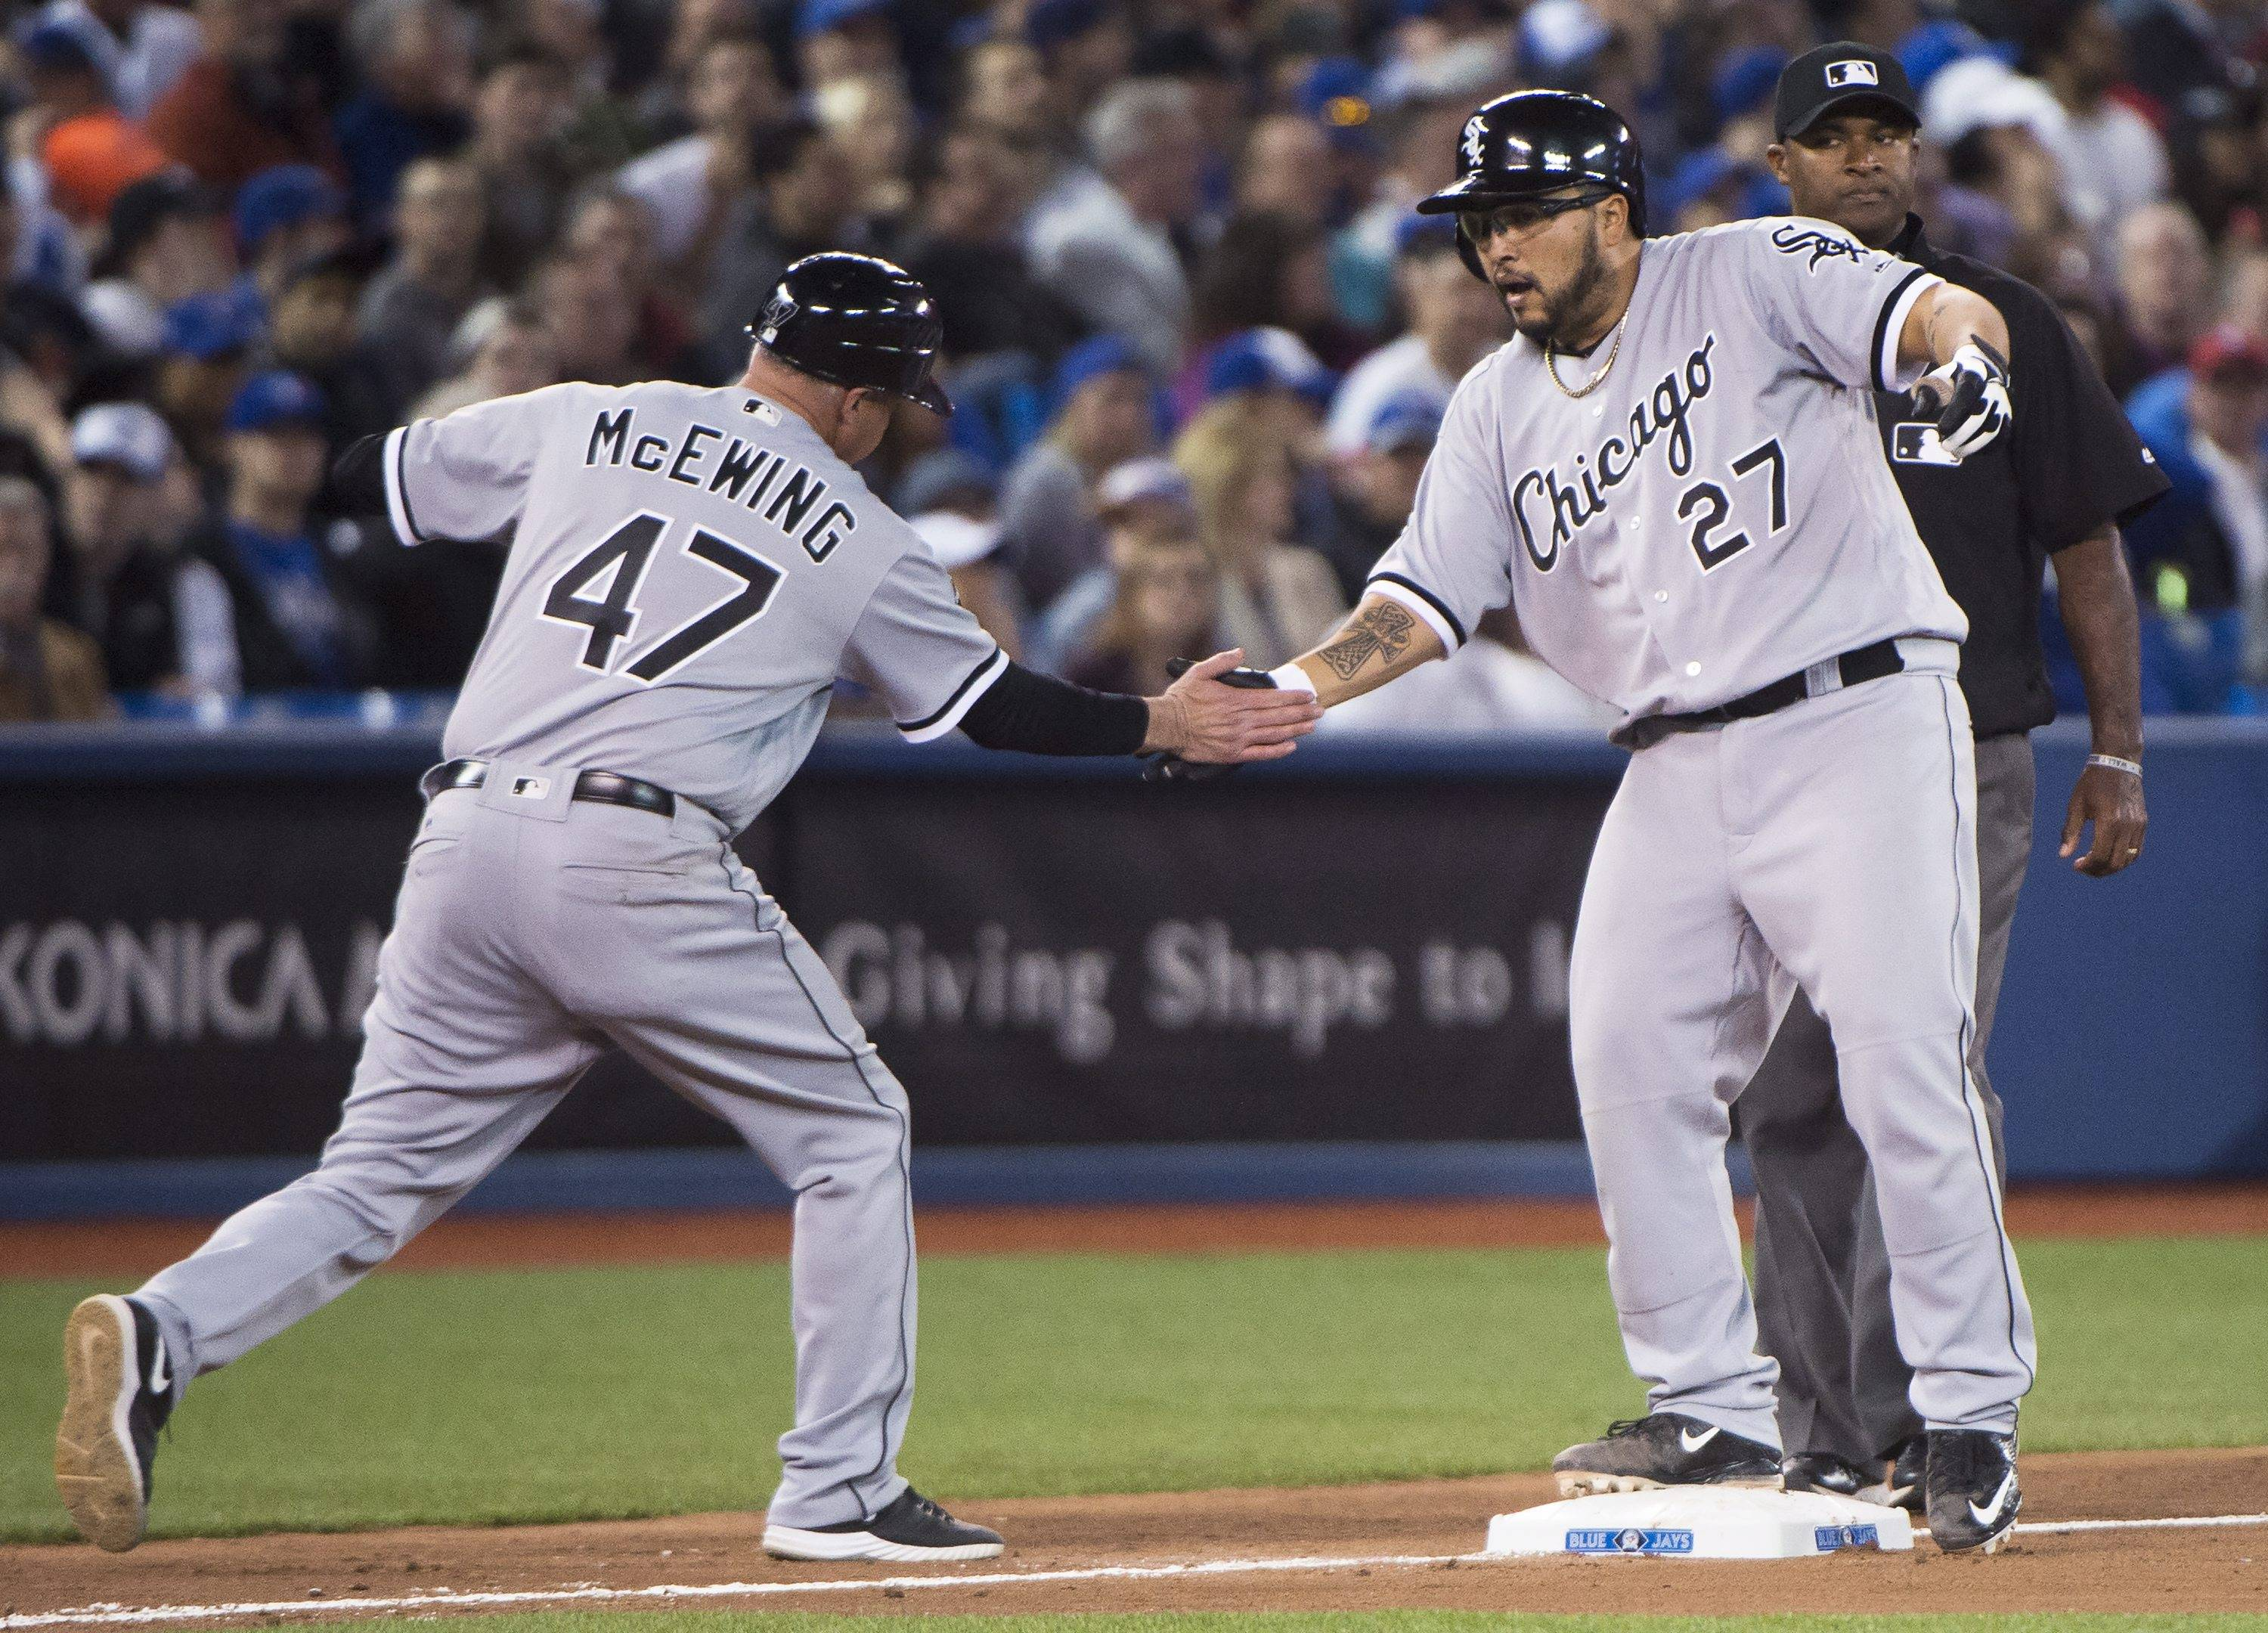 Chicago White Sox catcher Dioner Navarro (27) celebrates with third base coach Joe McEwing (47) after hitting a two-run triple against the Toronto Blue Jays during the seventh inning of a baseball game Wednesday, April 27, 2016, in Toronto. (Nathan Denette/The Canadian Press via AP)